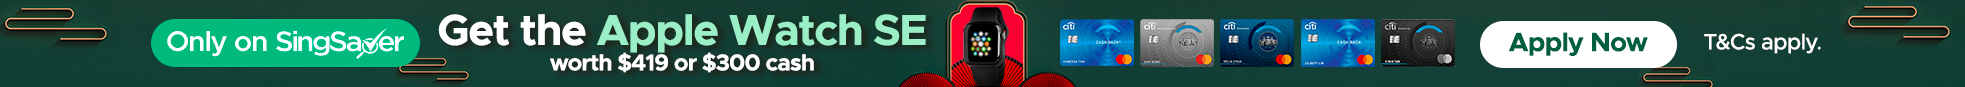 CITIxAPPLEWATCHCASH_RESULTSPAGEBANNERS_DESKTOP.png